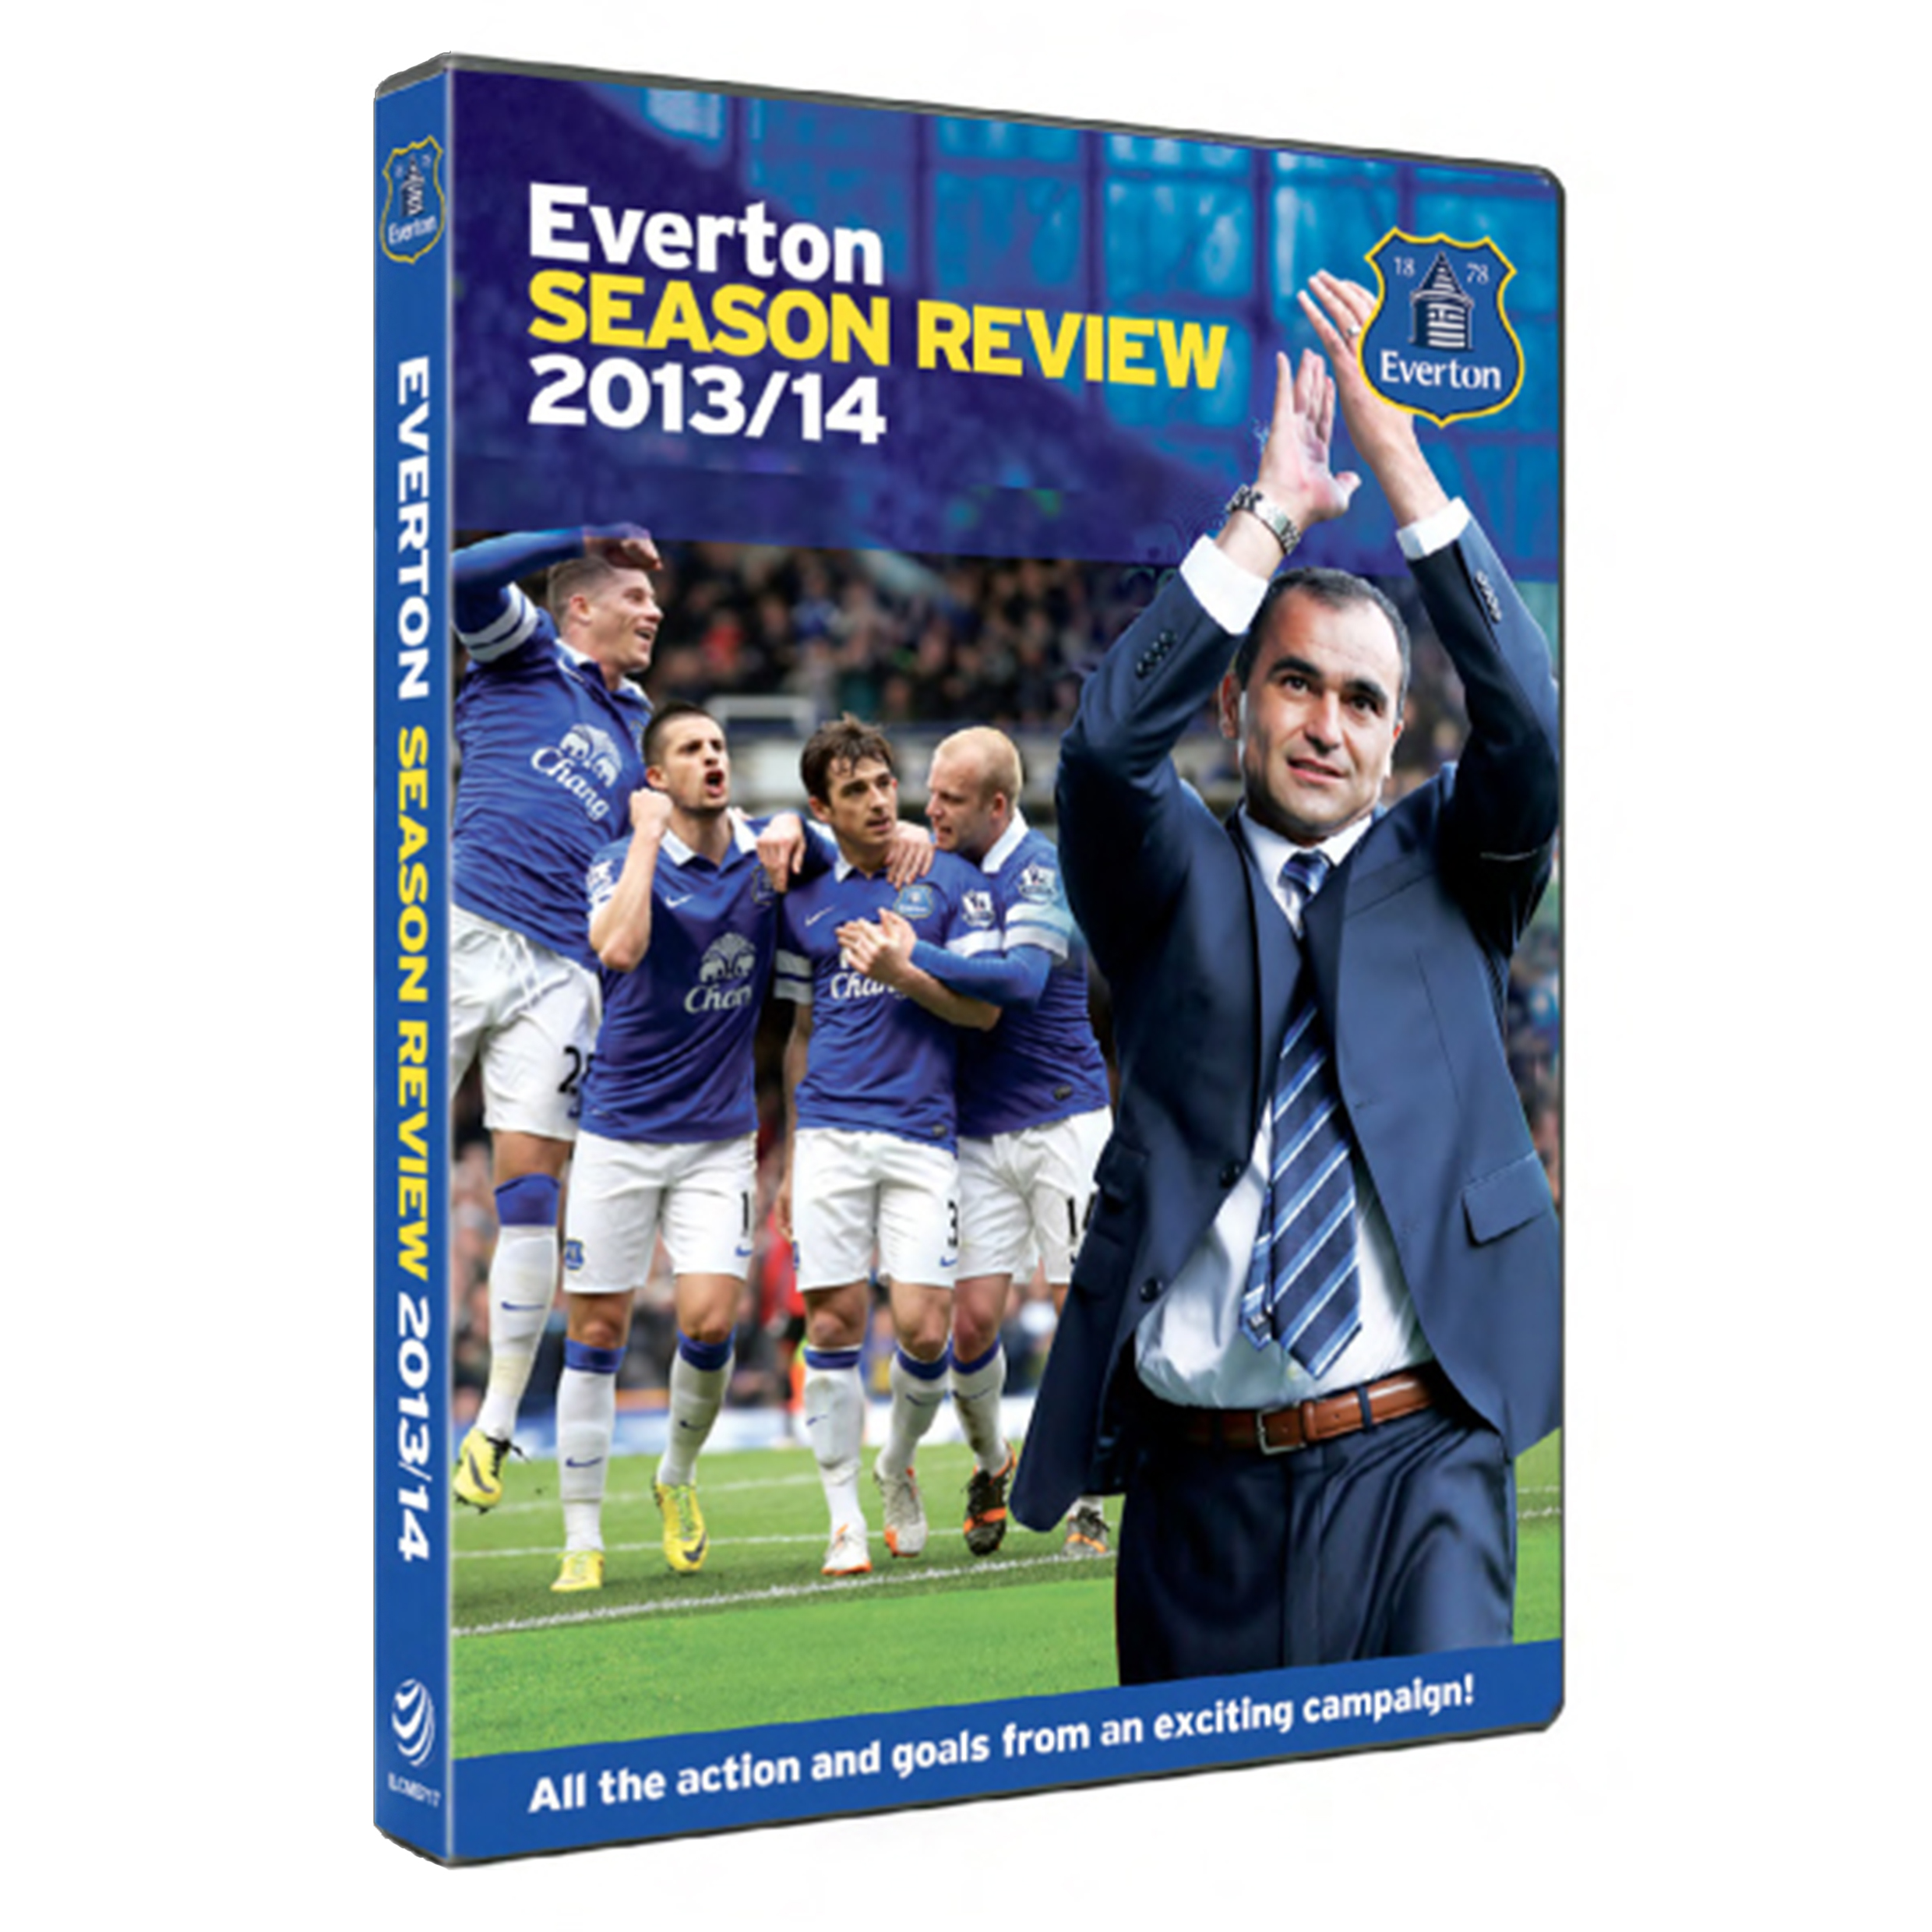 Everton Season Review 2013/14 DVD